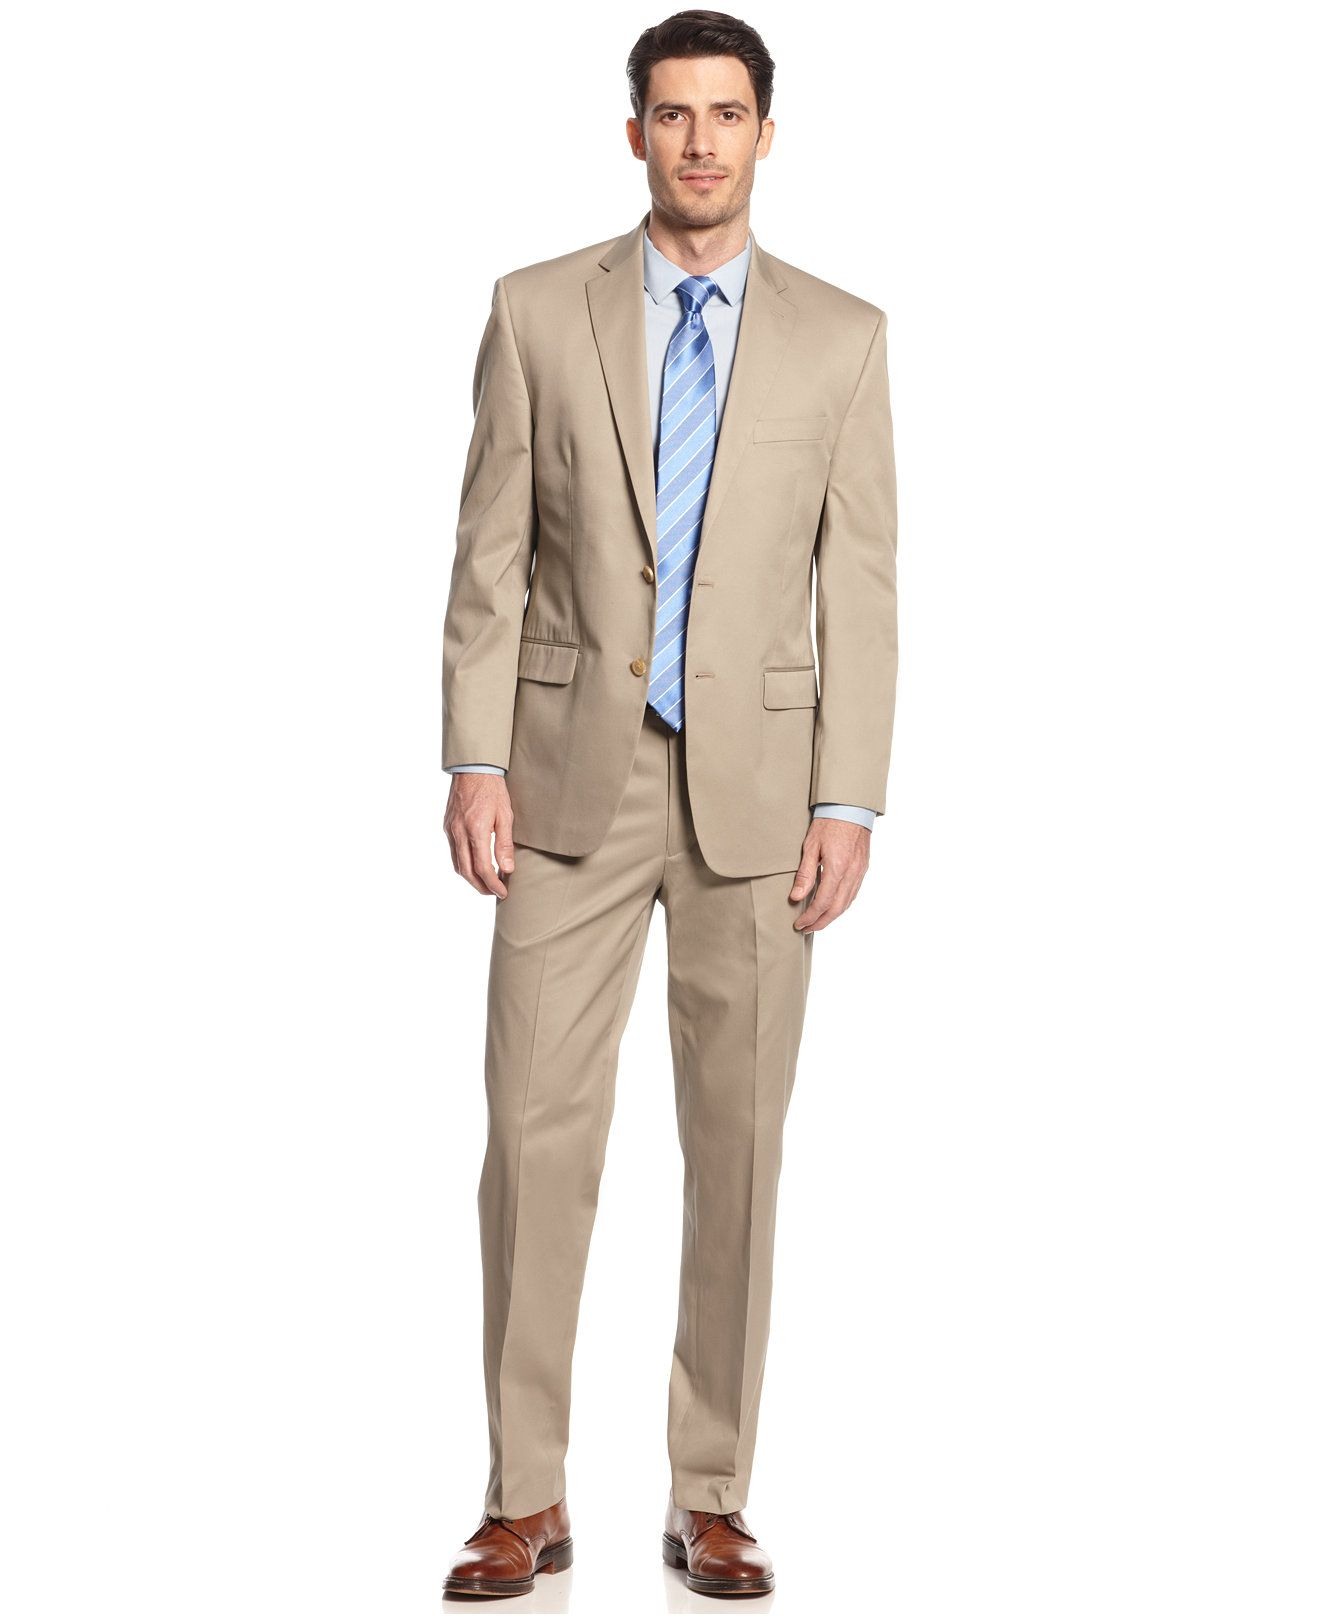 Lauren By Ralph Lauren Tan Solid Cotton Suit Separates